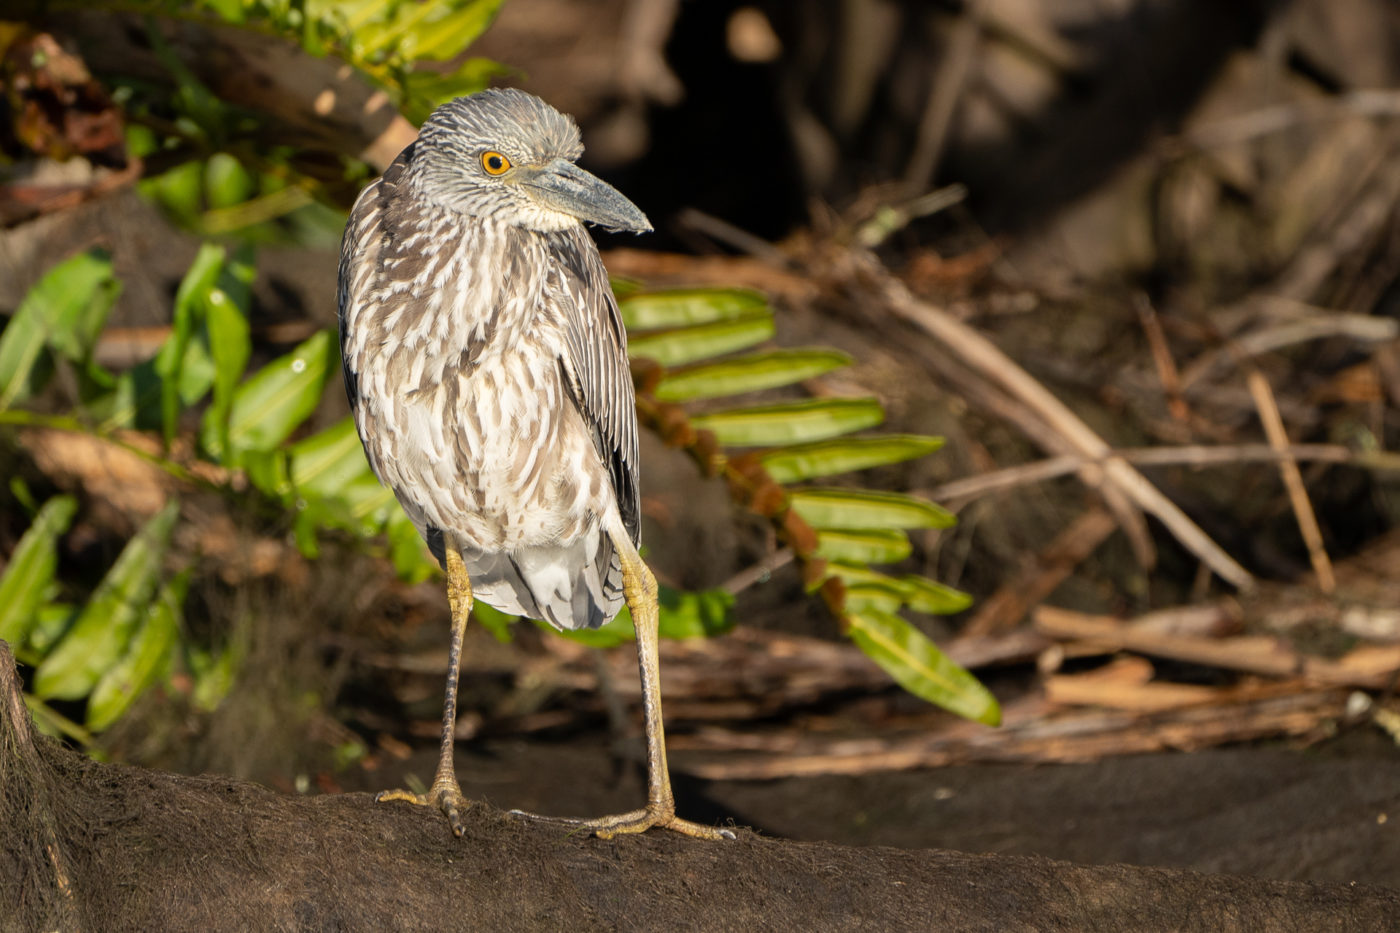 Juv. Yellow-crowned Night Heron